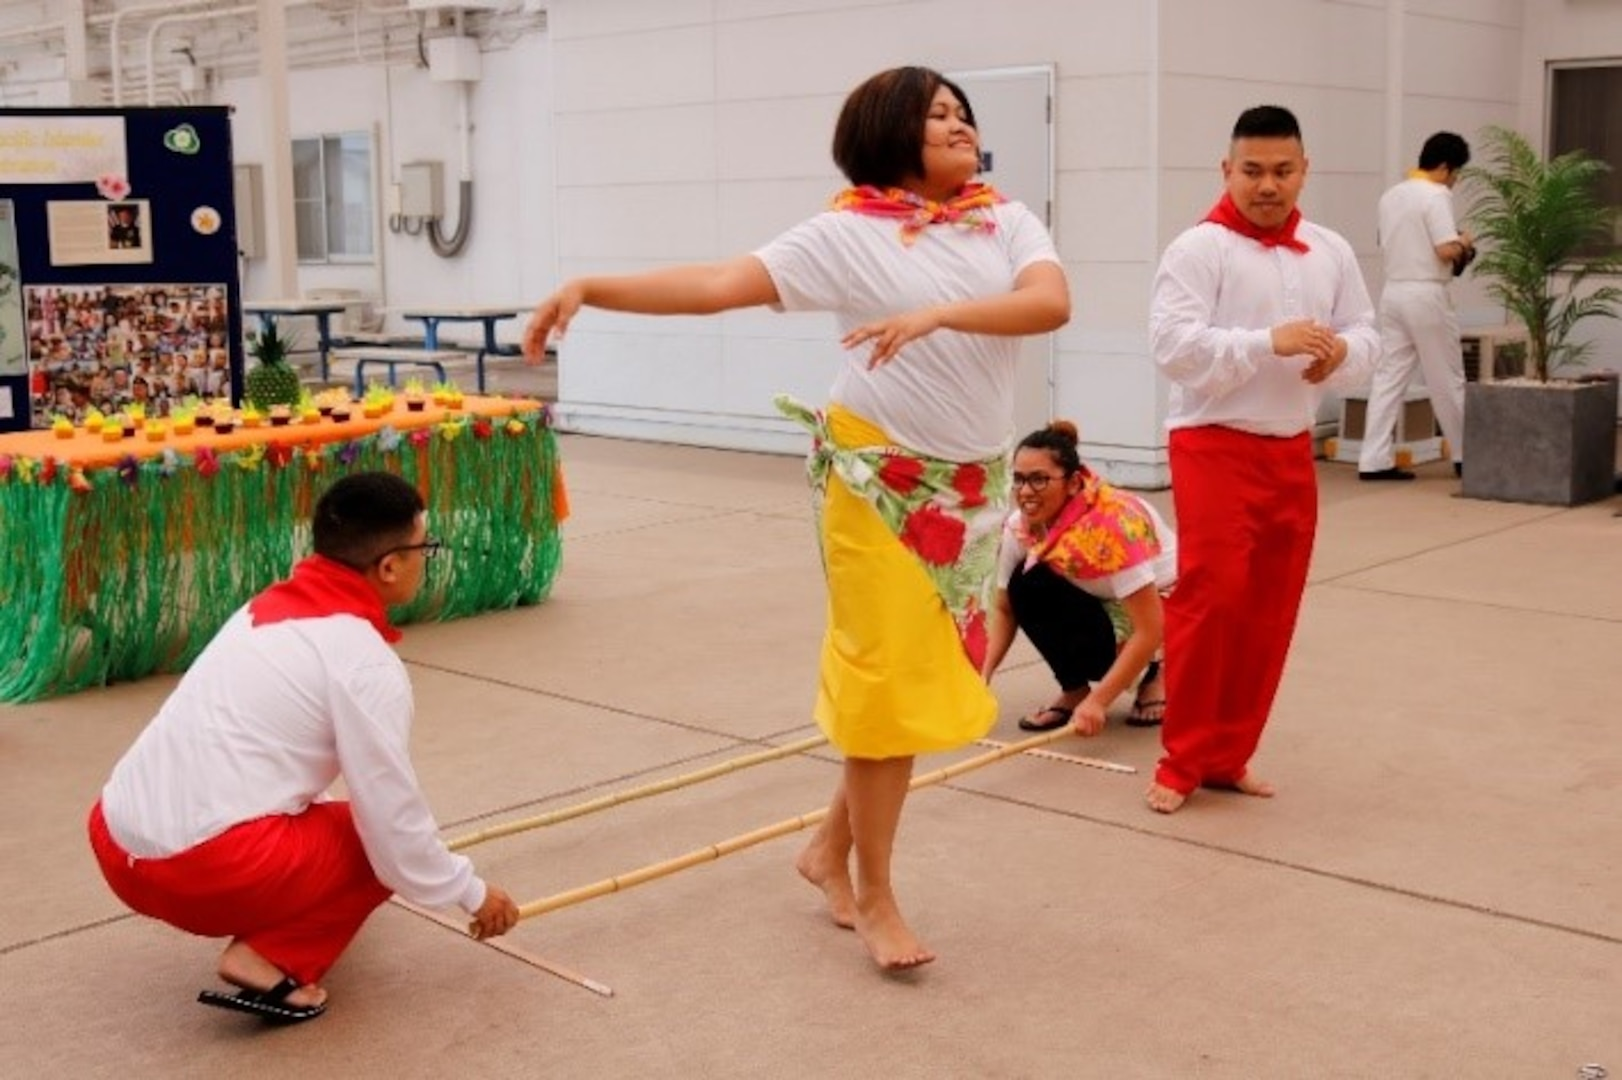 During the ceremony, performances such as Tinikling, a traditional Philippine folk dance, were demonstrated to pay tribute to the generations of Asian Americans and Pacific Islanders who have enriched America's history and have been instrumental in its future success.